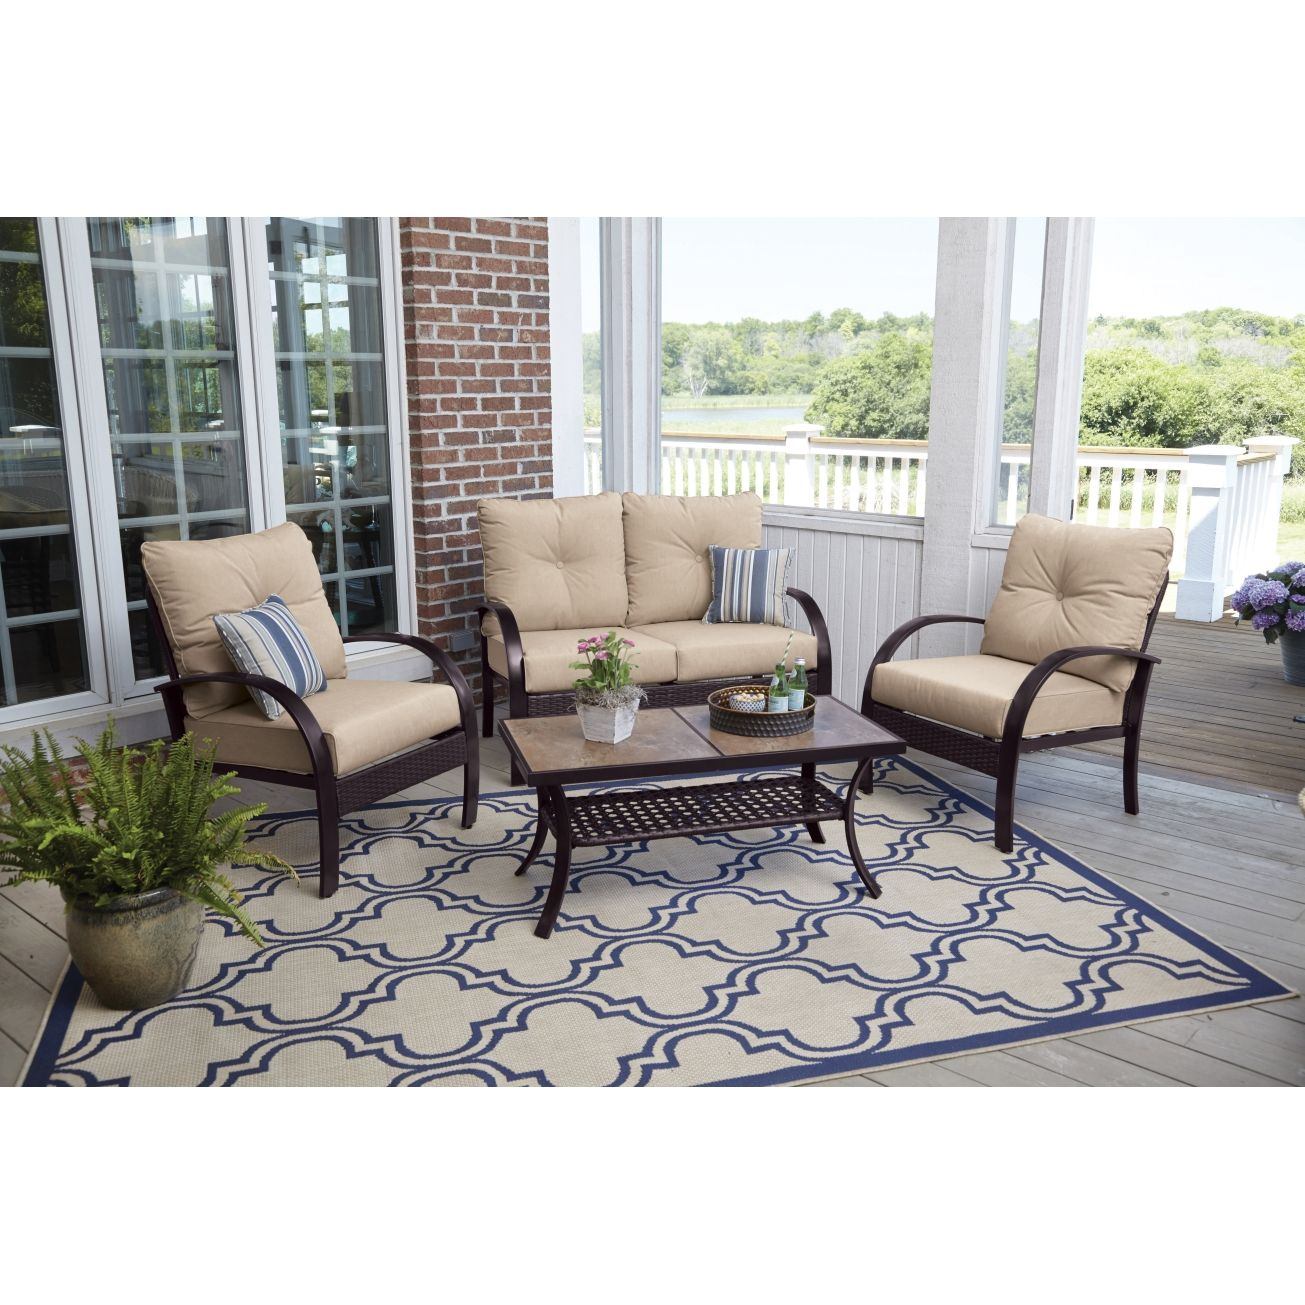 Living Accents Ballina Seating Set 4 Pc.   All Patio Collections   Ace  Hardware